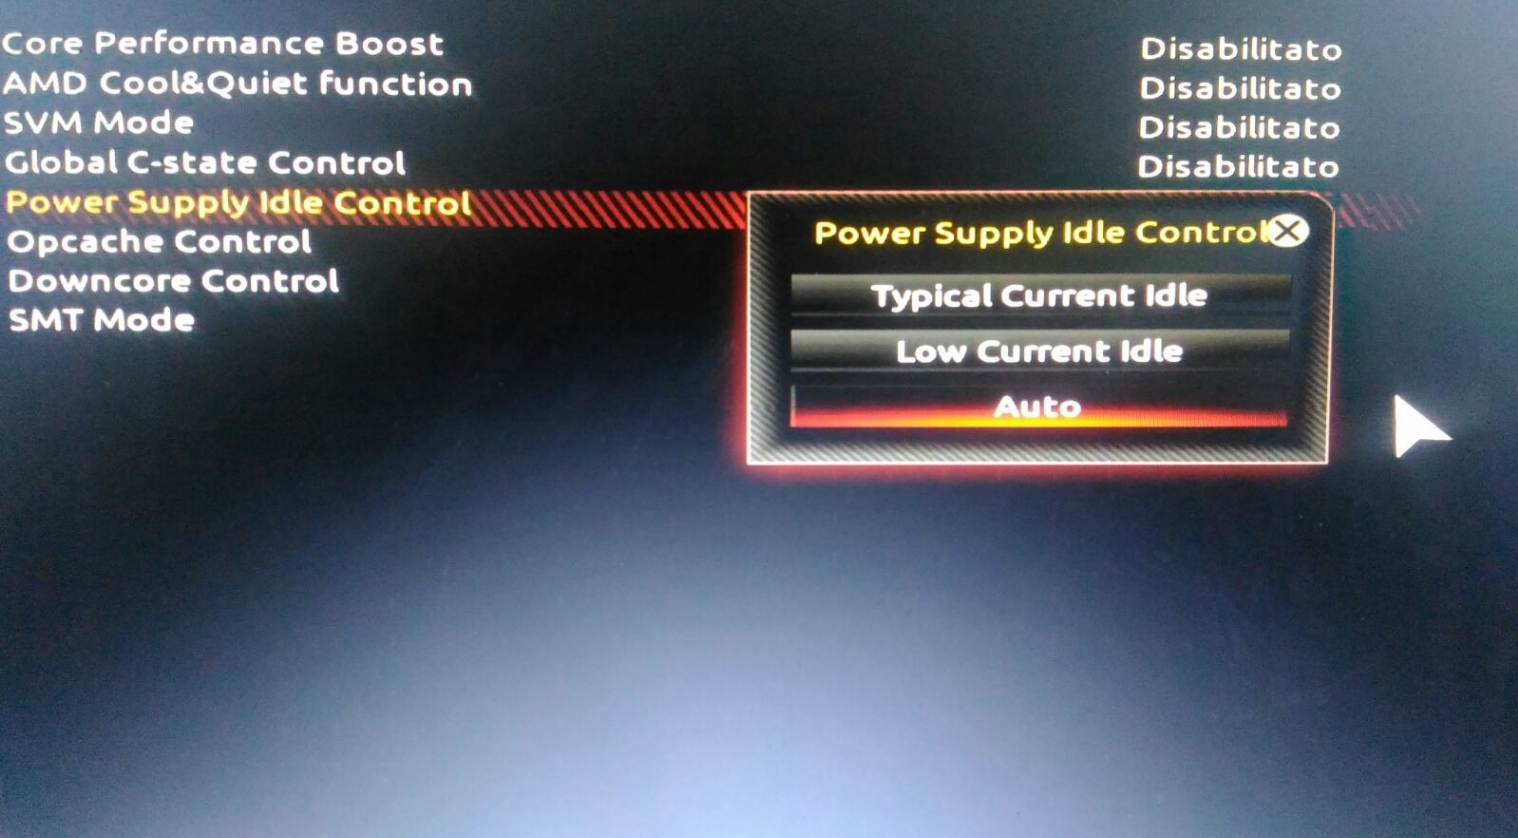 Power Supply Idle Control in motherboard GA-AB350 GAMING 3